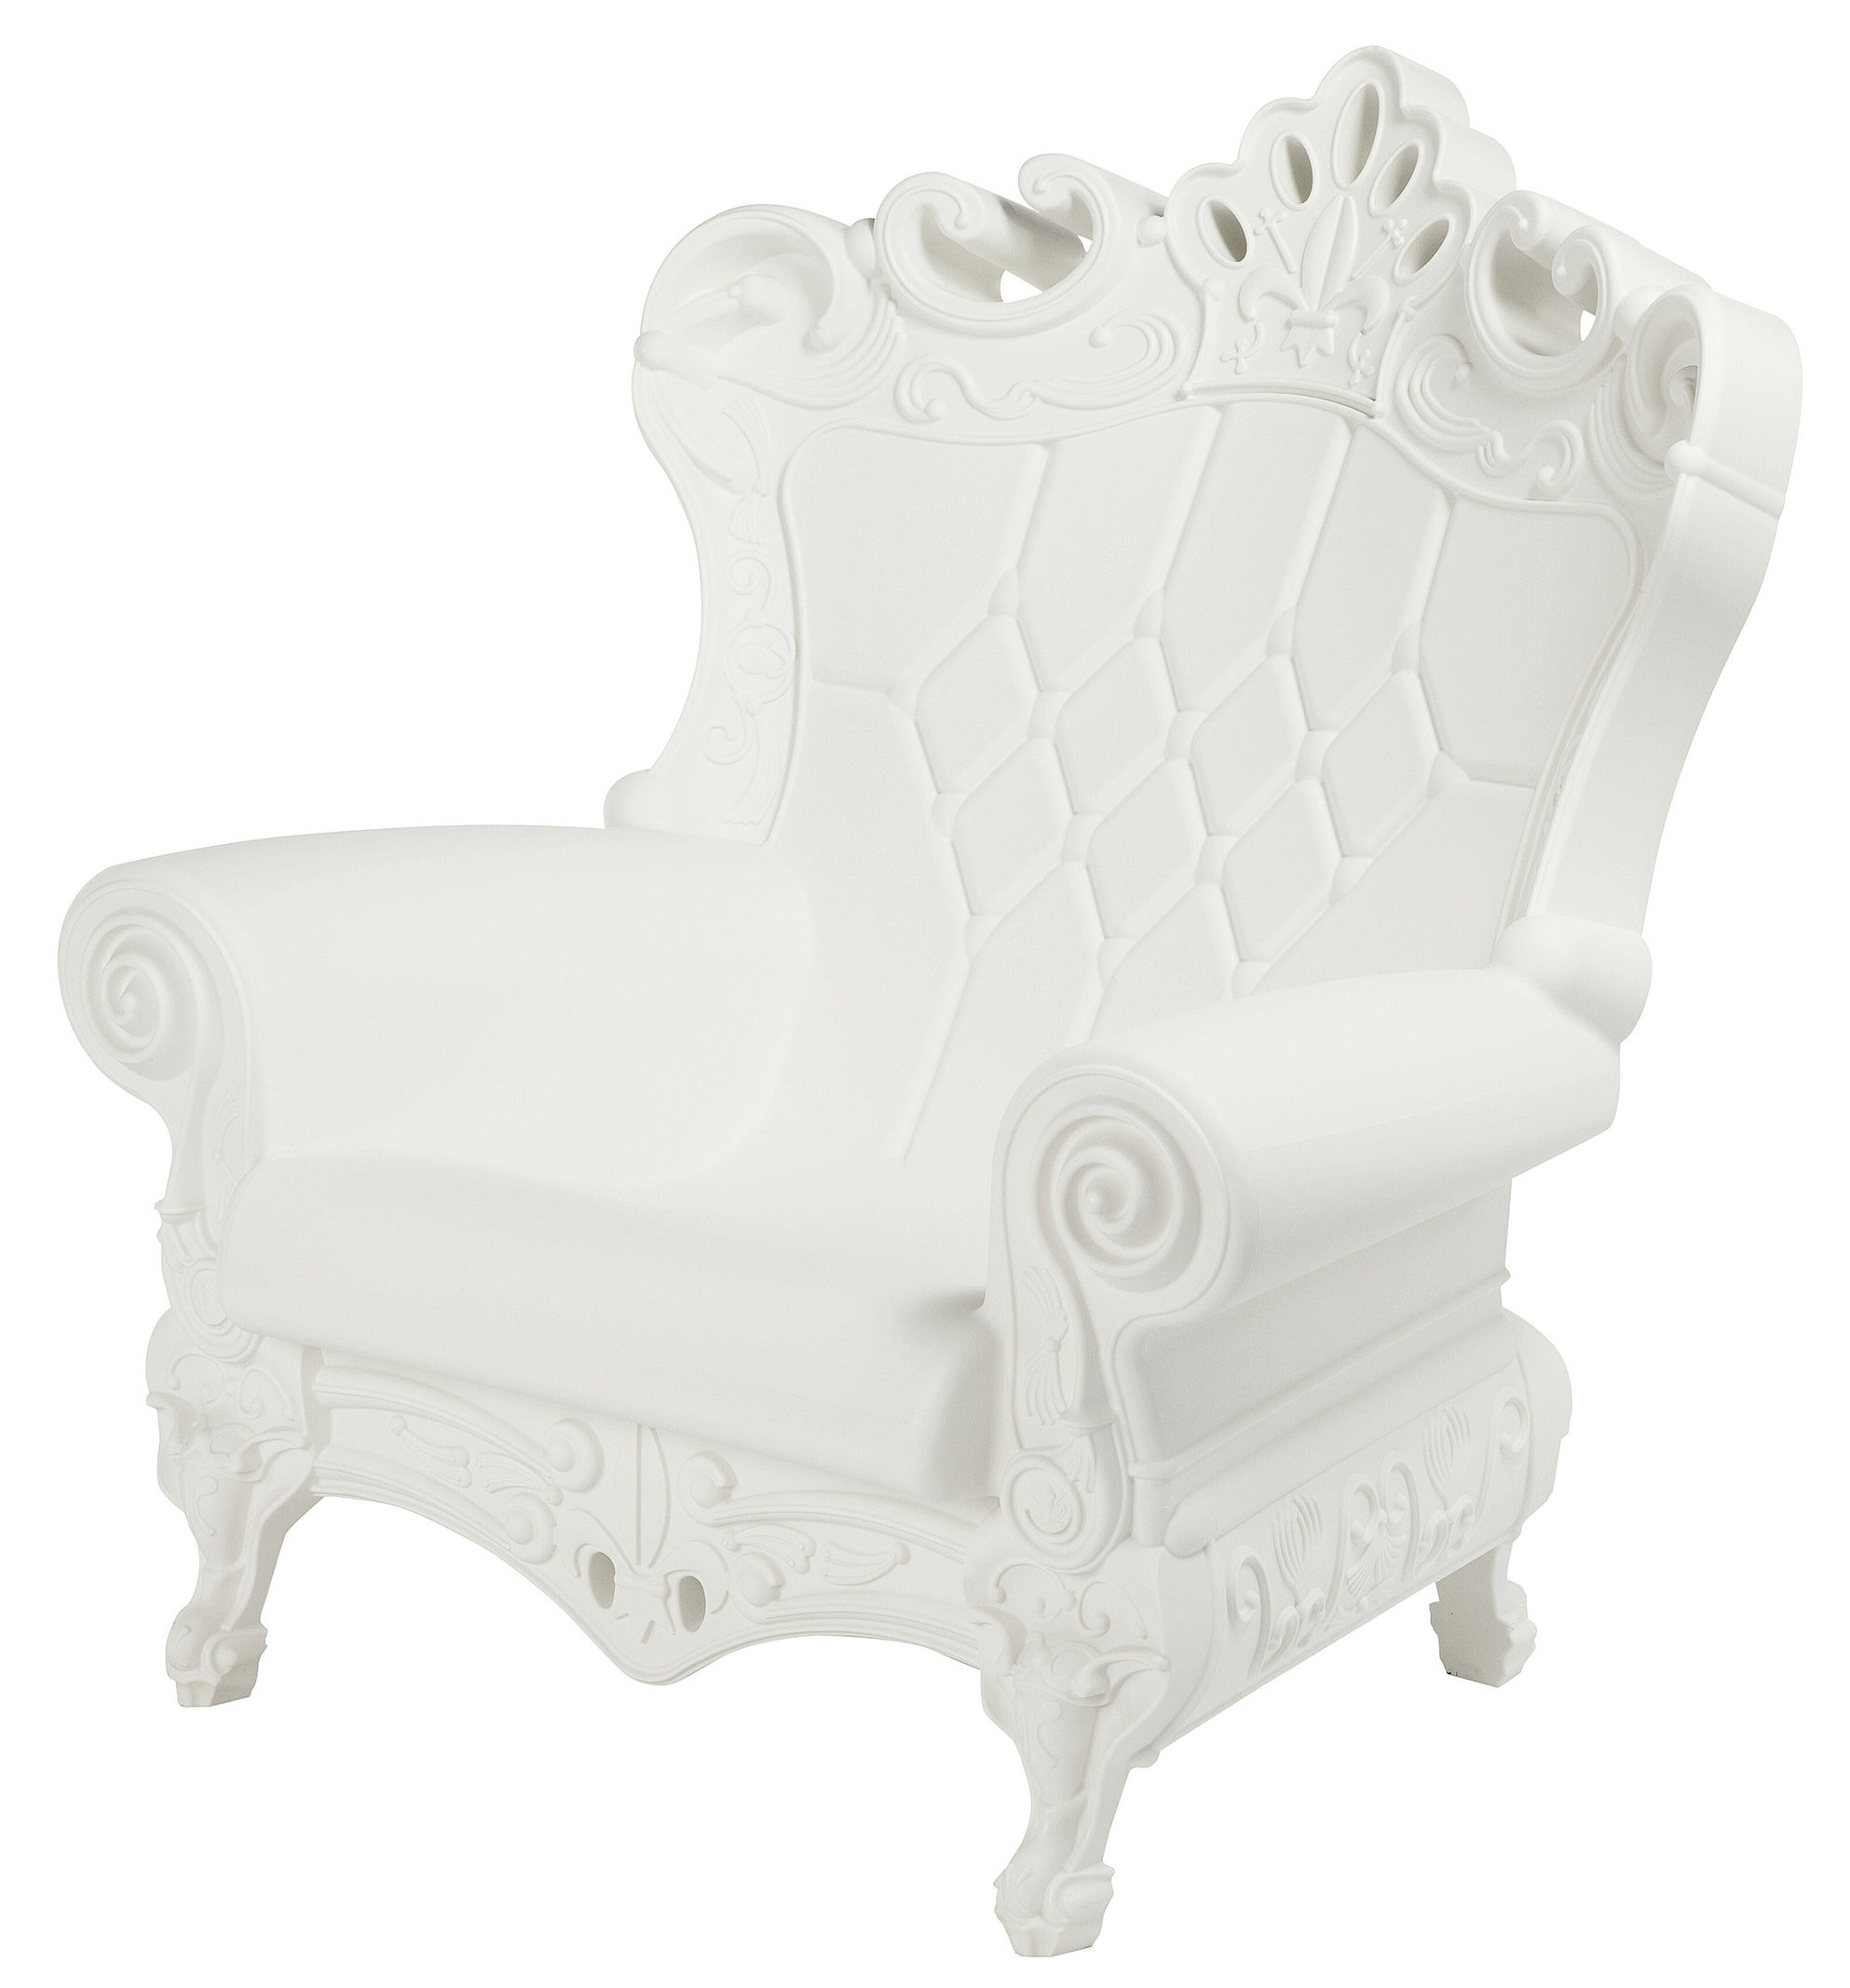 Queen of Love Poltrona - /L 103 cm Bianco by Design of Love by Slide ...